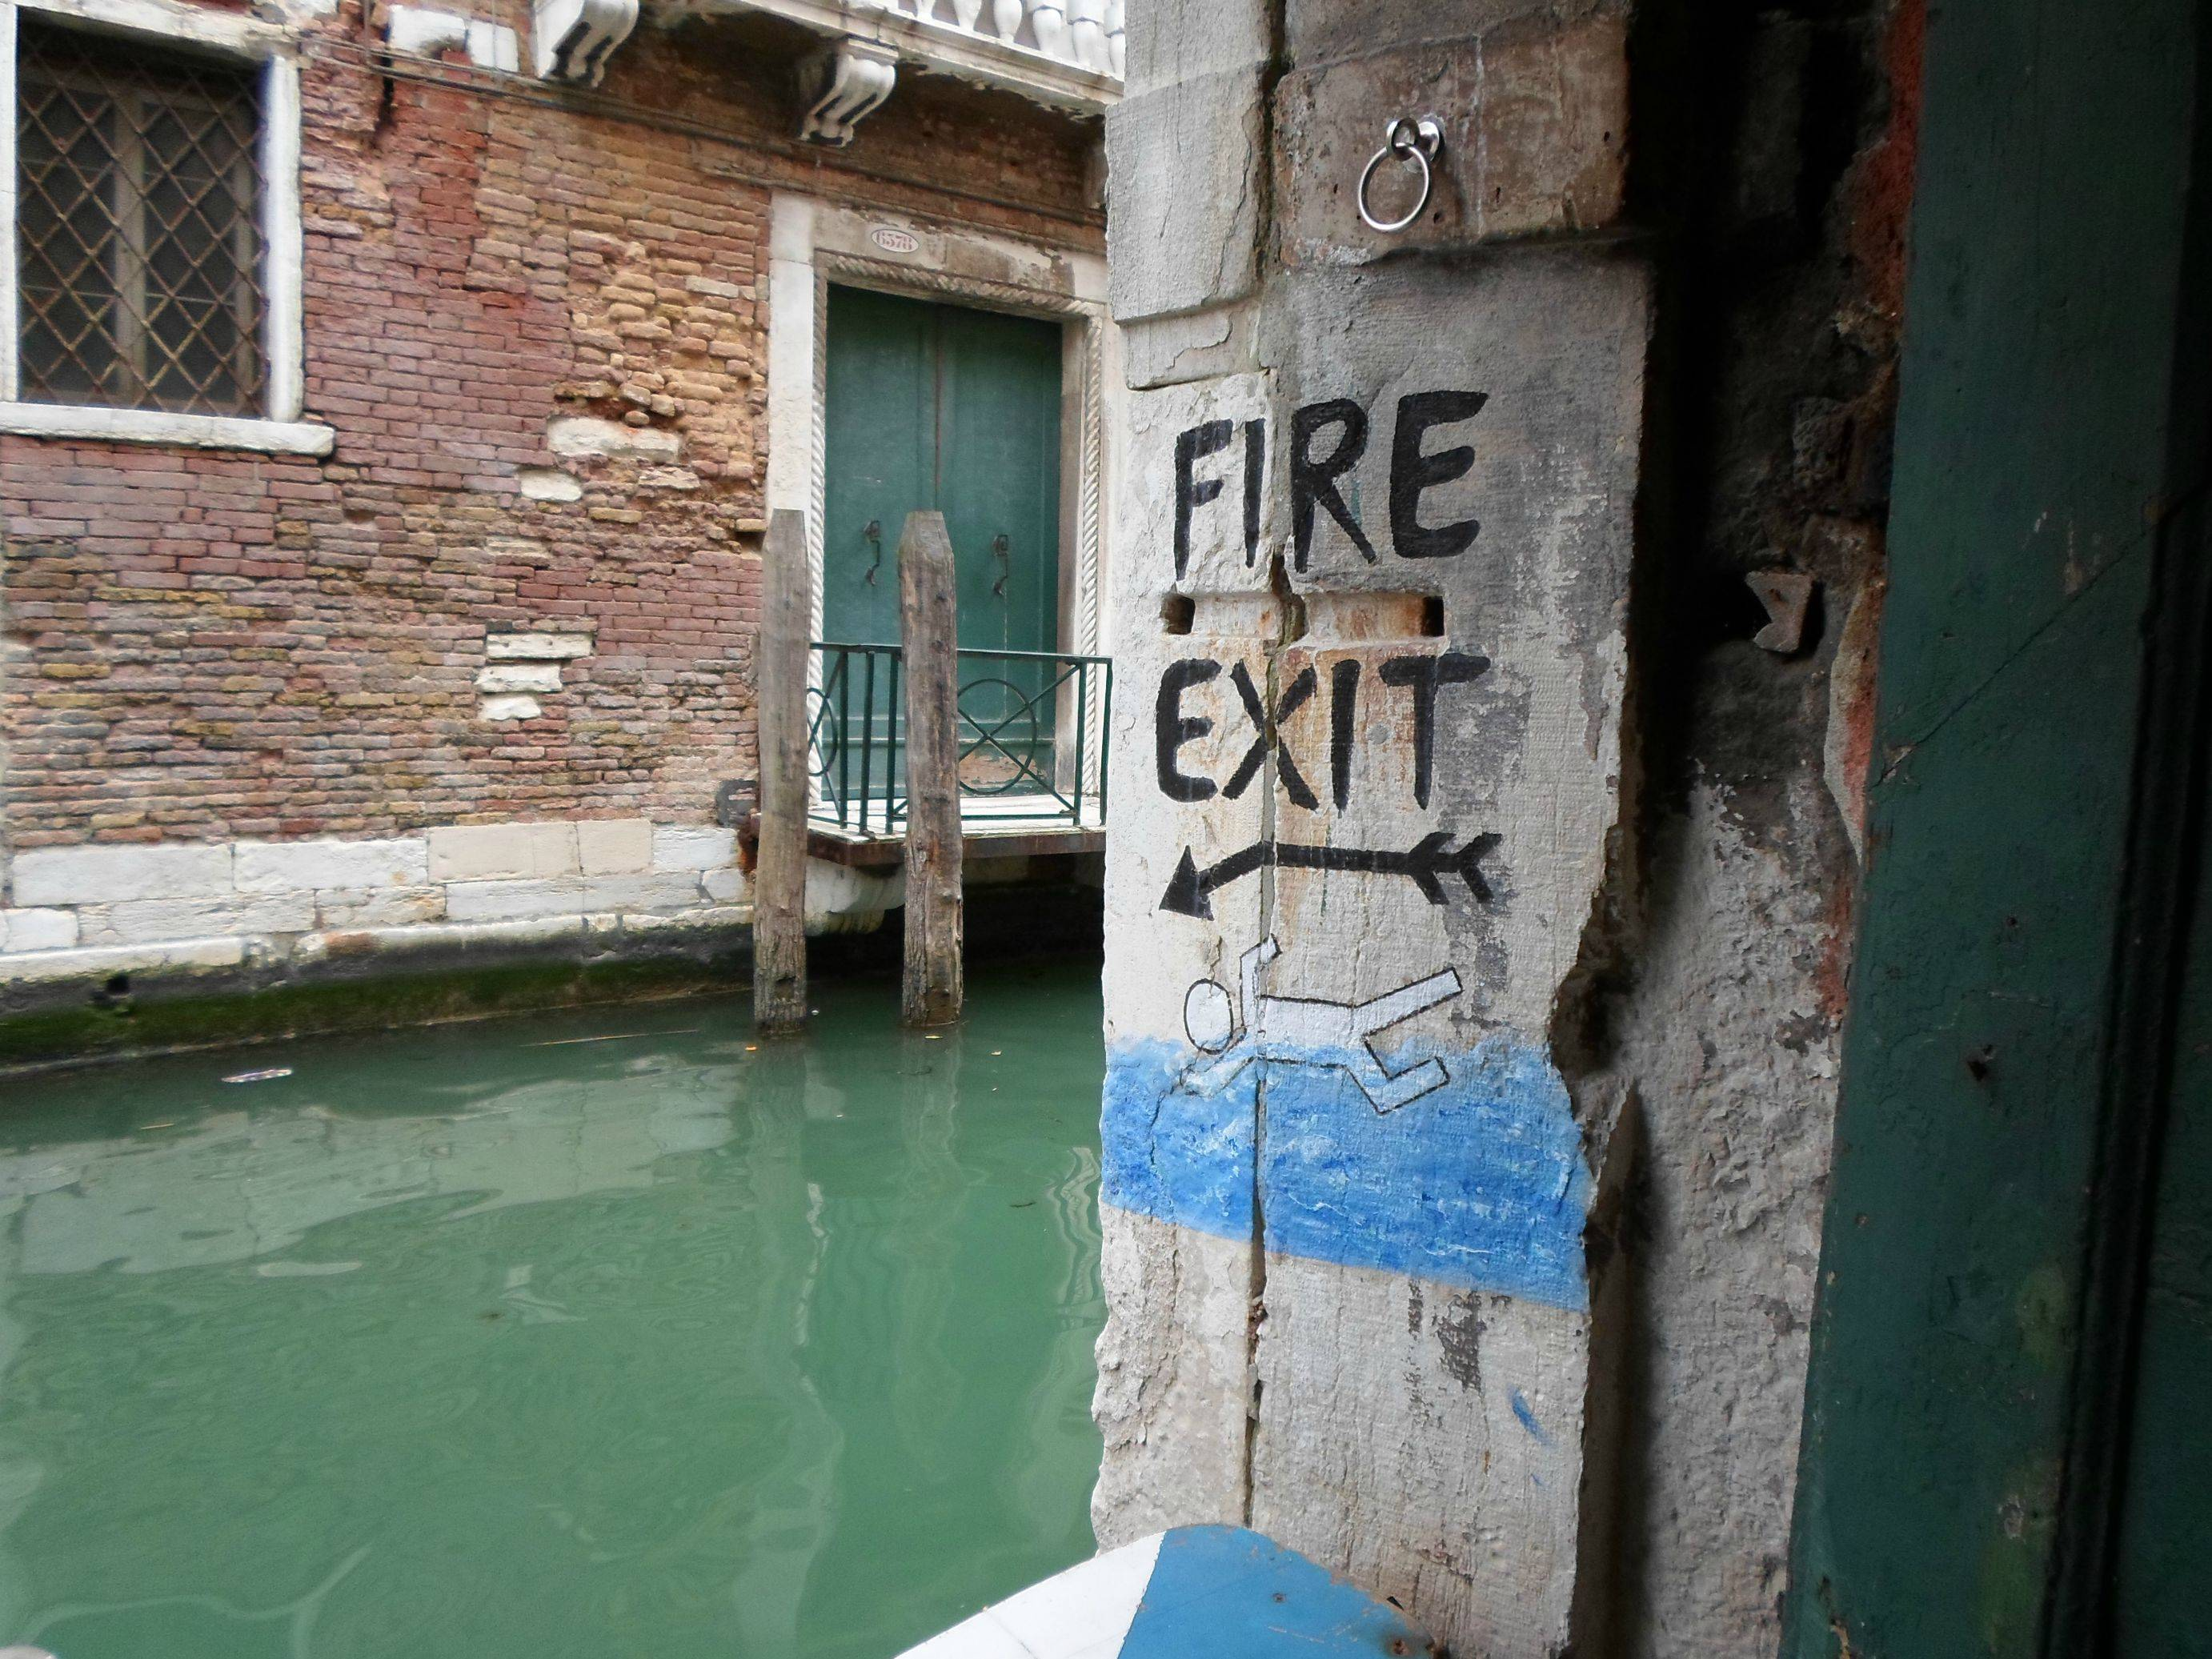 Entertainment Fire exits in Venice